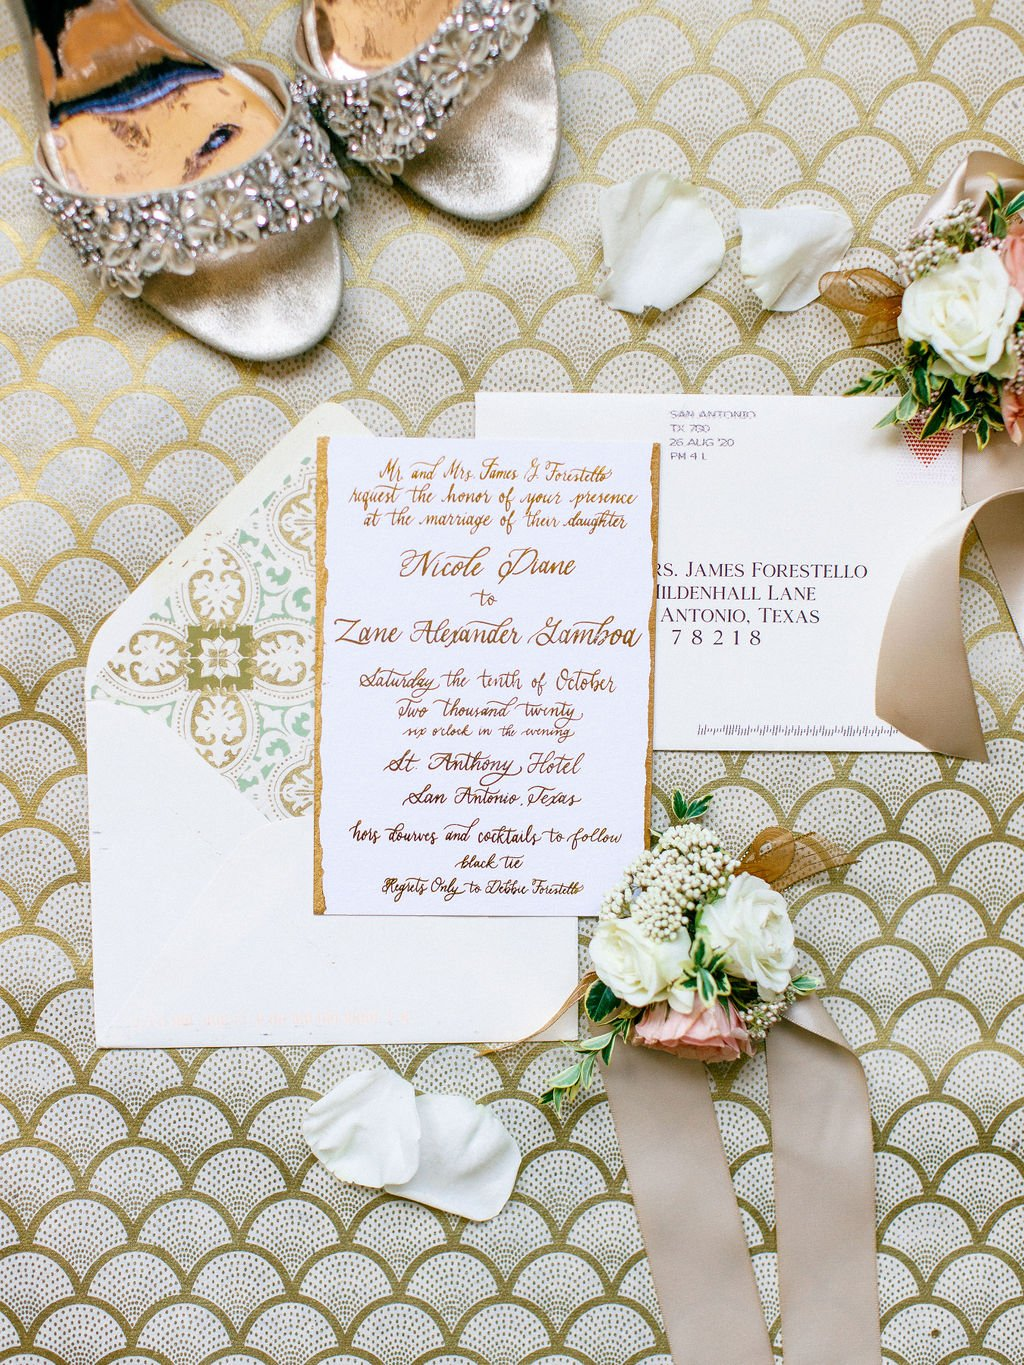 wed with grace San Antonio wedding stationary